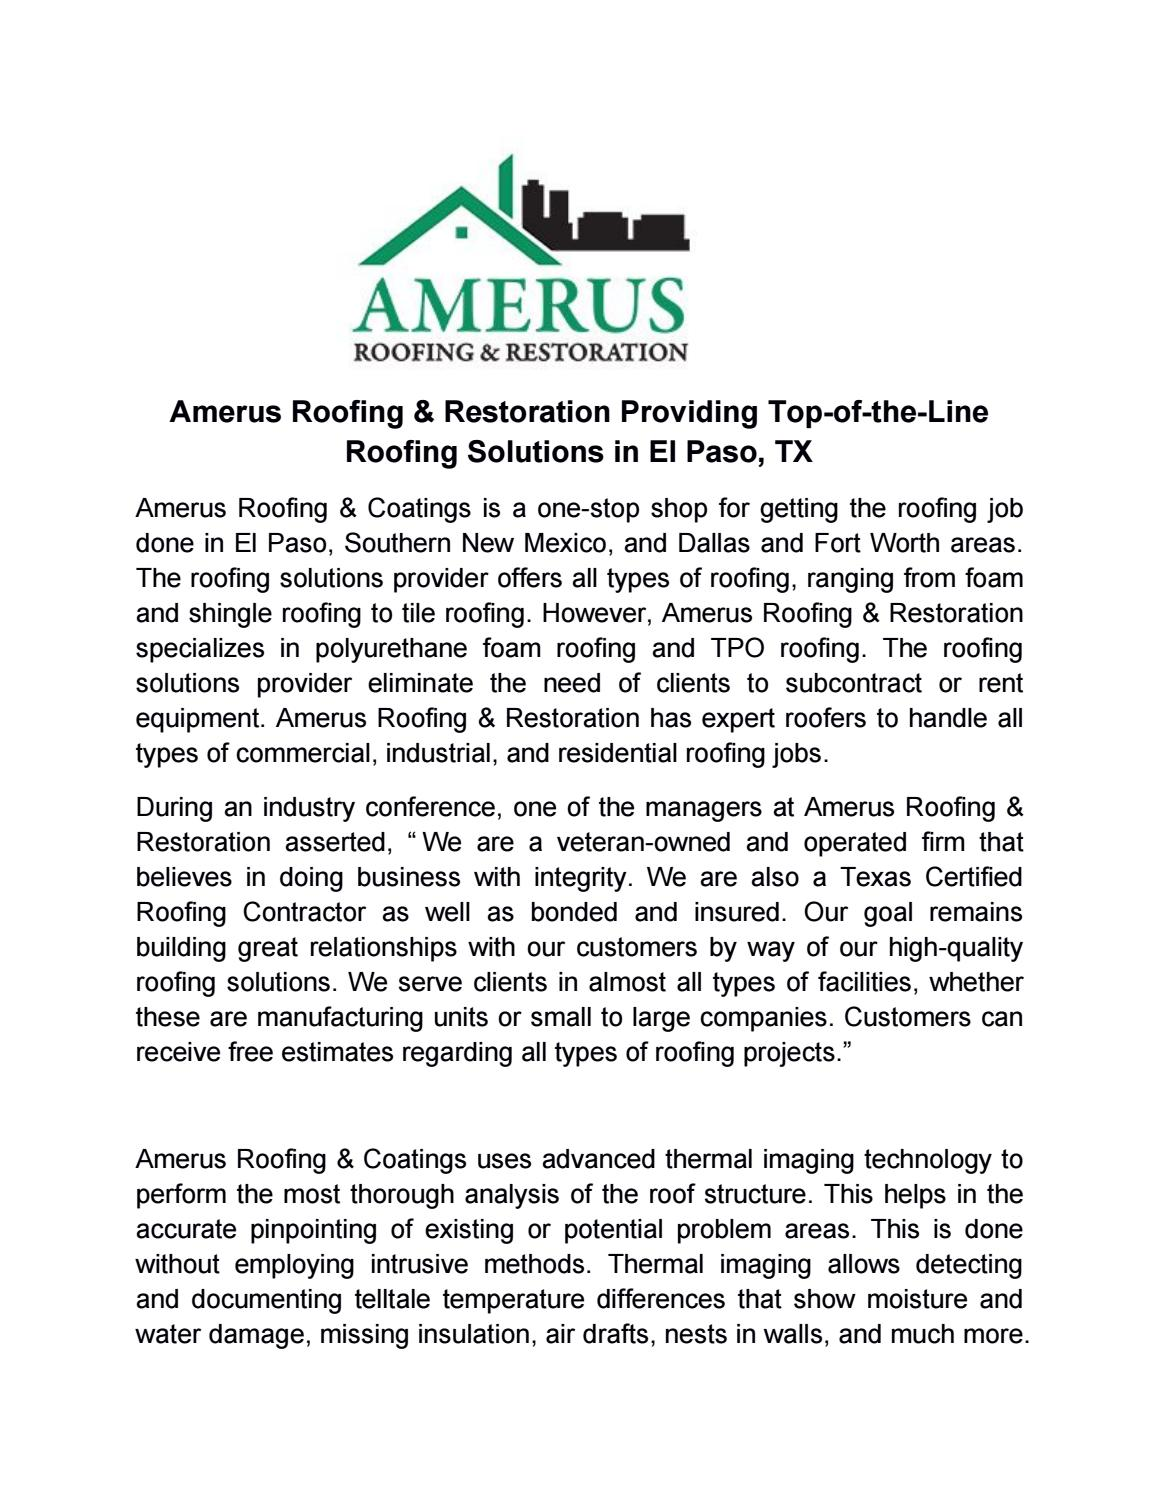 Amerus Roofing El Paso amerus roofing & restoration providing top of the line